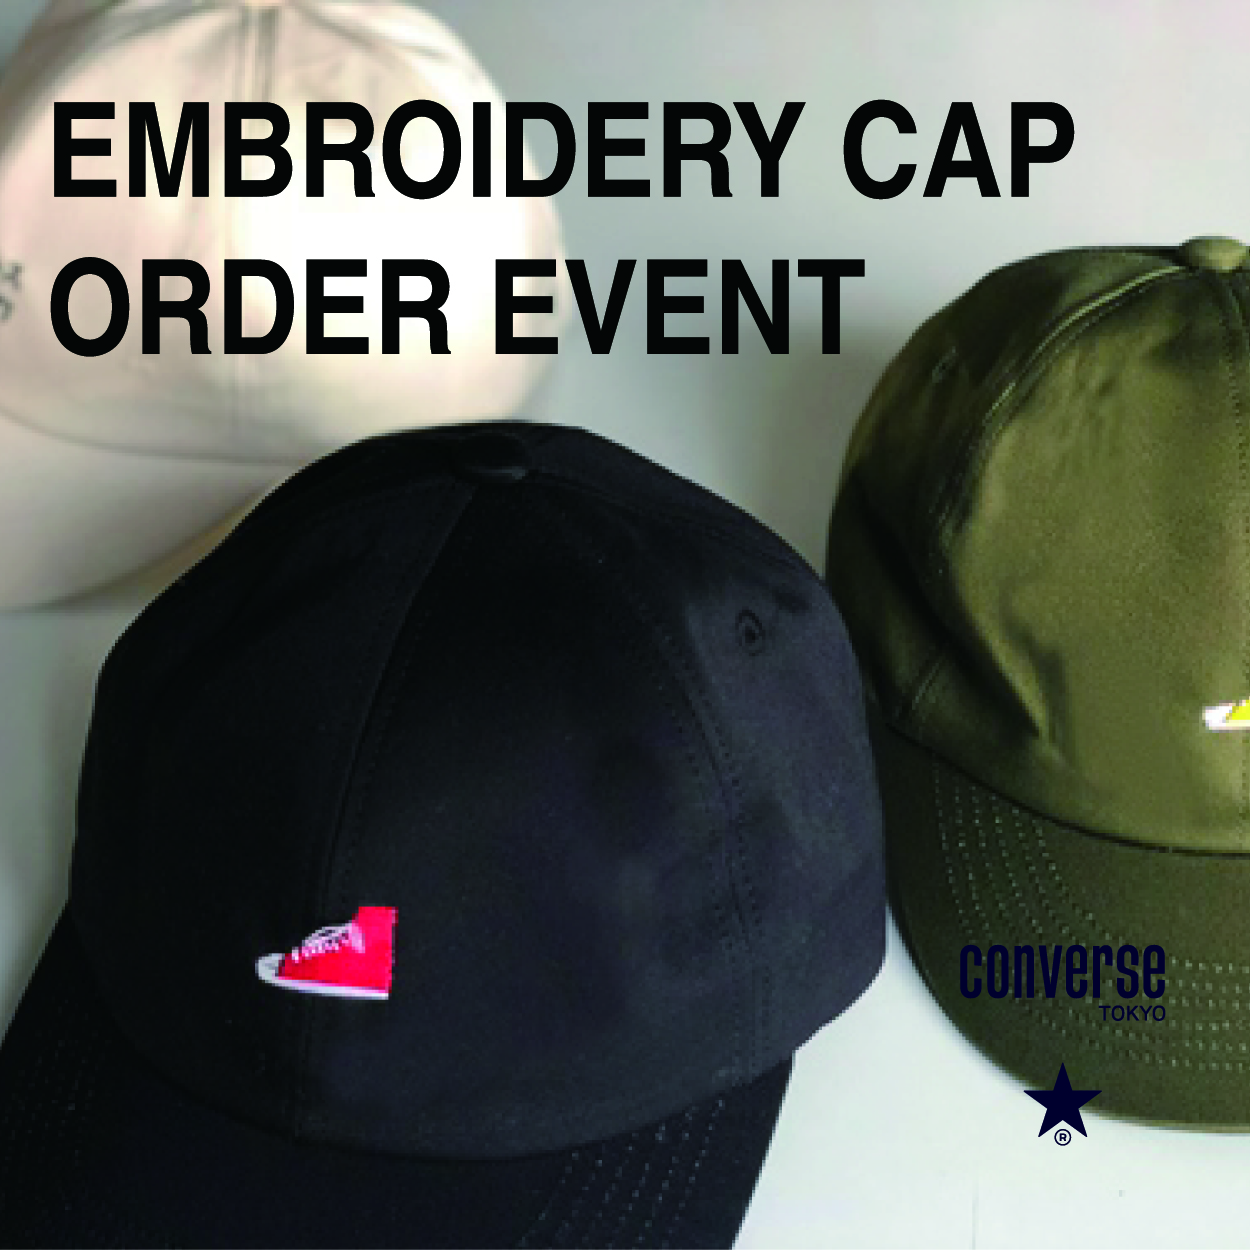 EMBROIDERY CAP ORDER EVENT